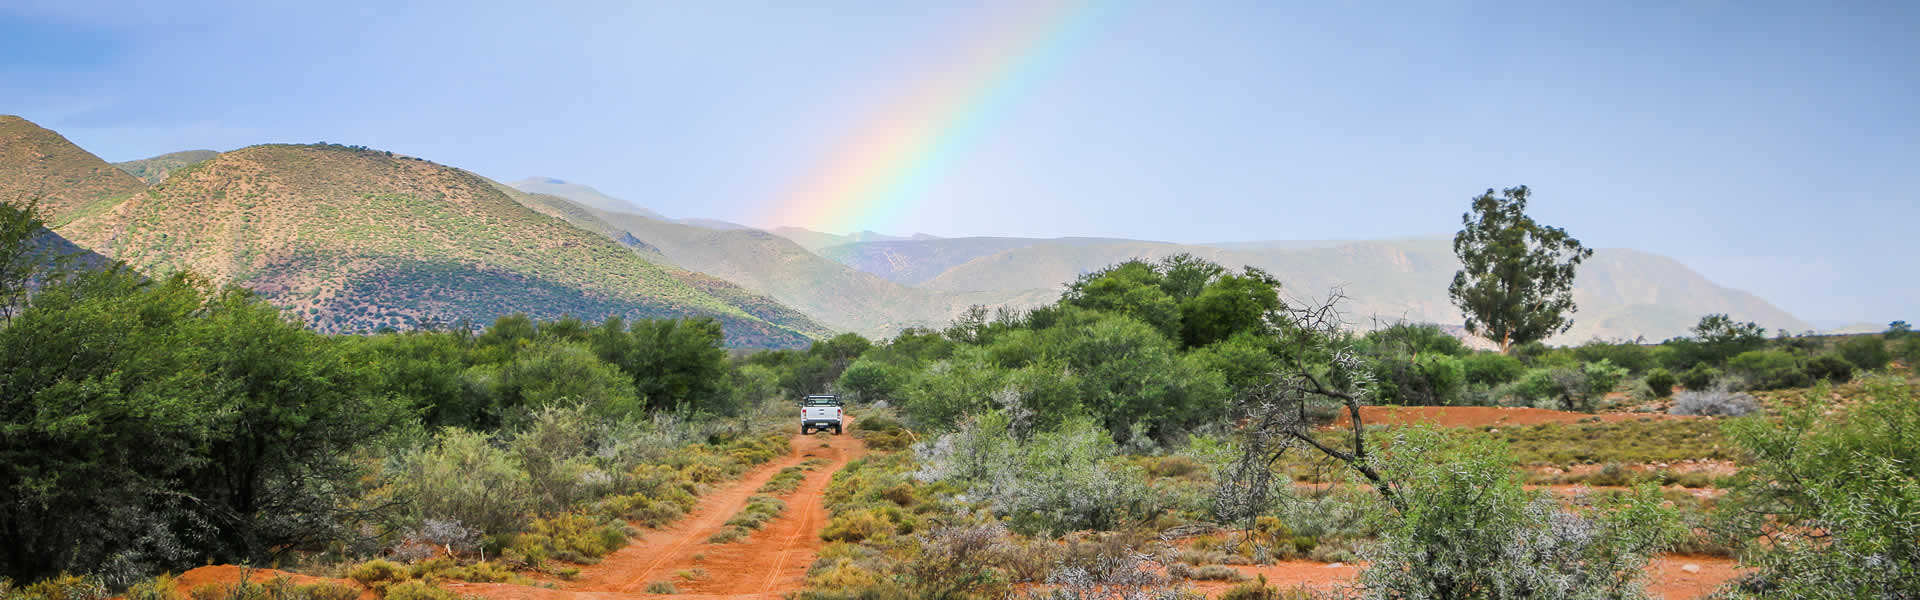 The Karoo says Thank You after some rain